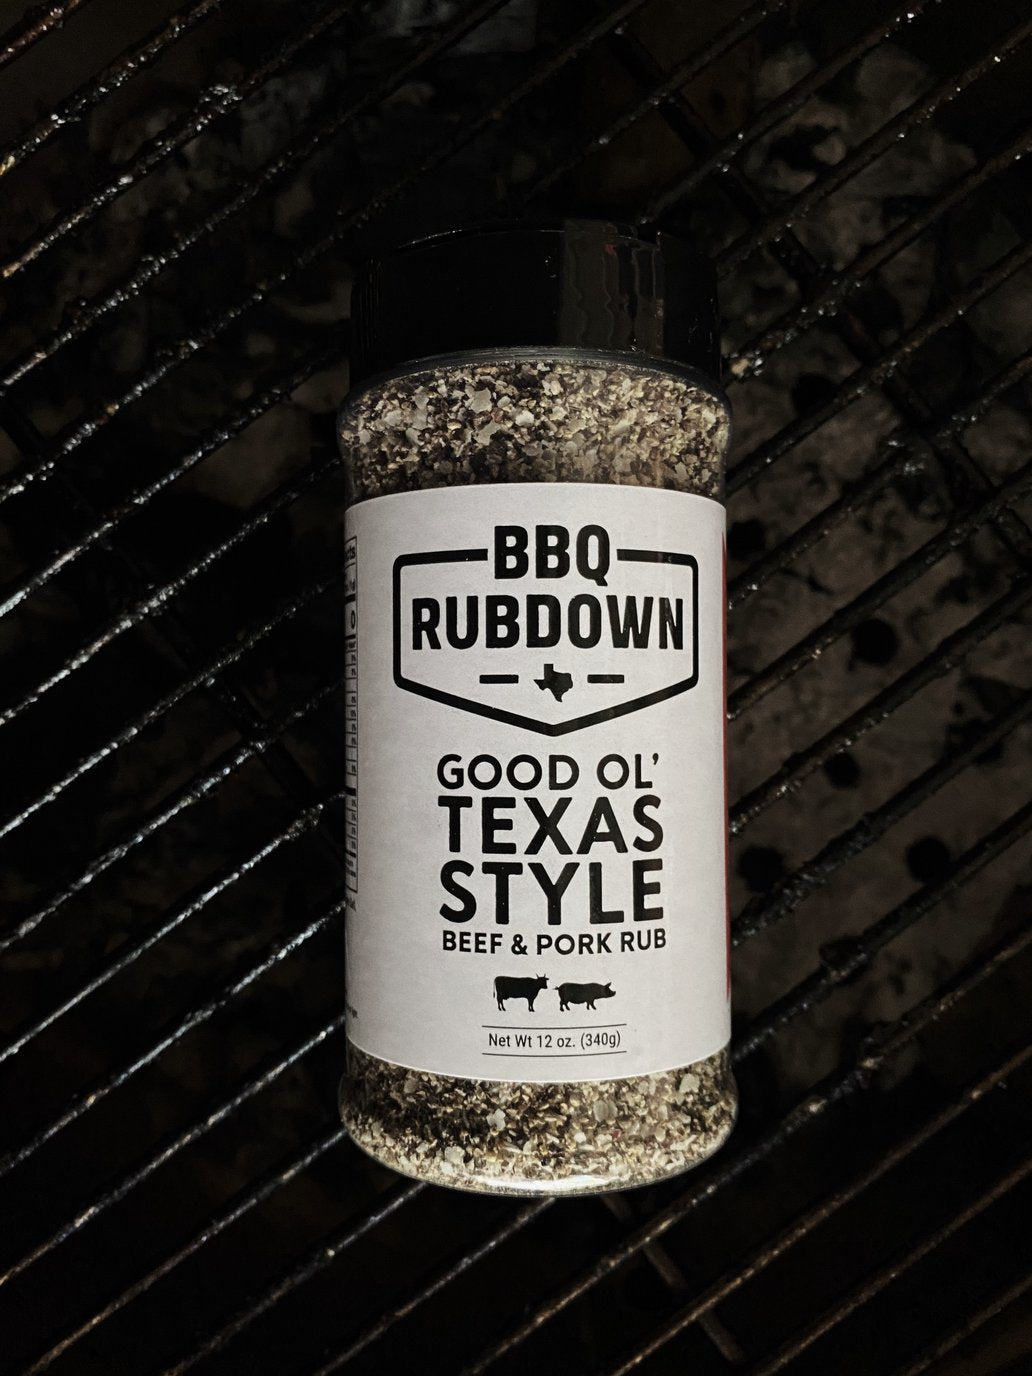 Good Ol' Texas Style Beef and Pork Rub - Step two